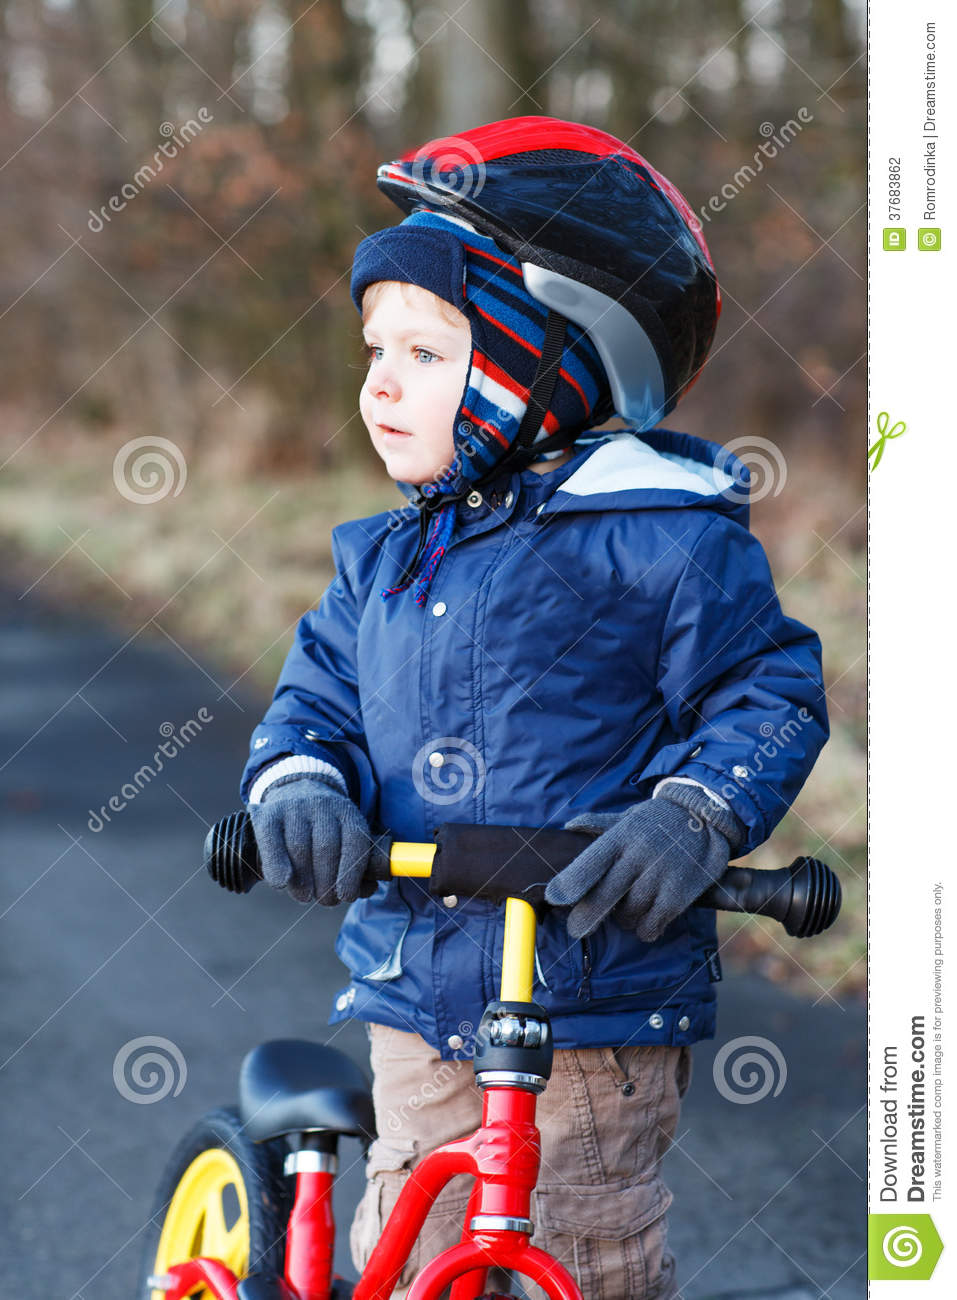 2 Years Old Toddler Riding On His First Bike Stock Photo Image Of